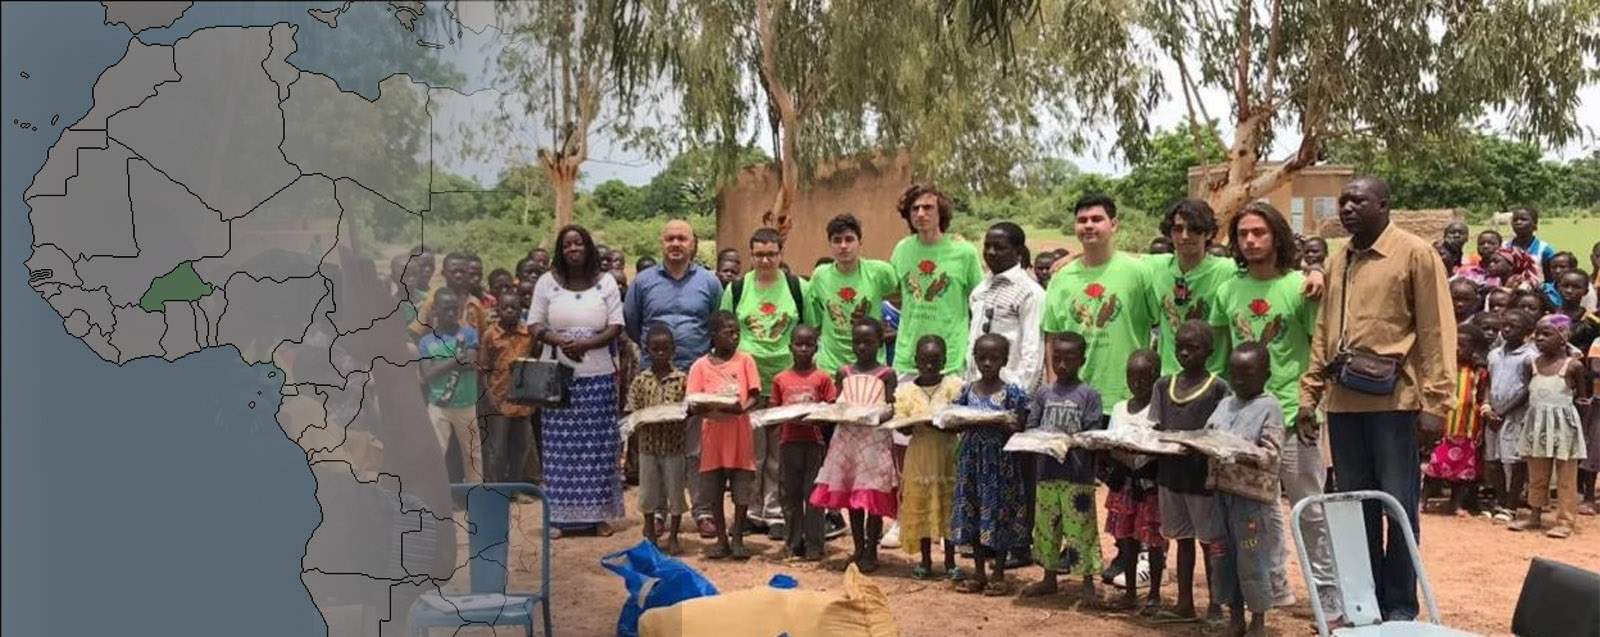 Purchase, prepare, and distribute beef packages to the underprivileged people of Burkina Faso